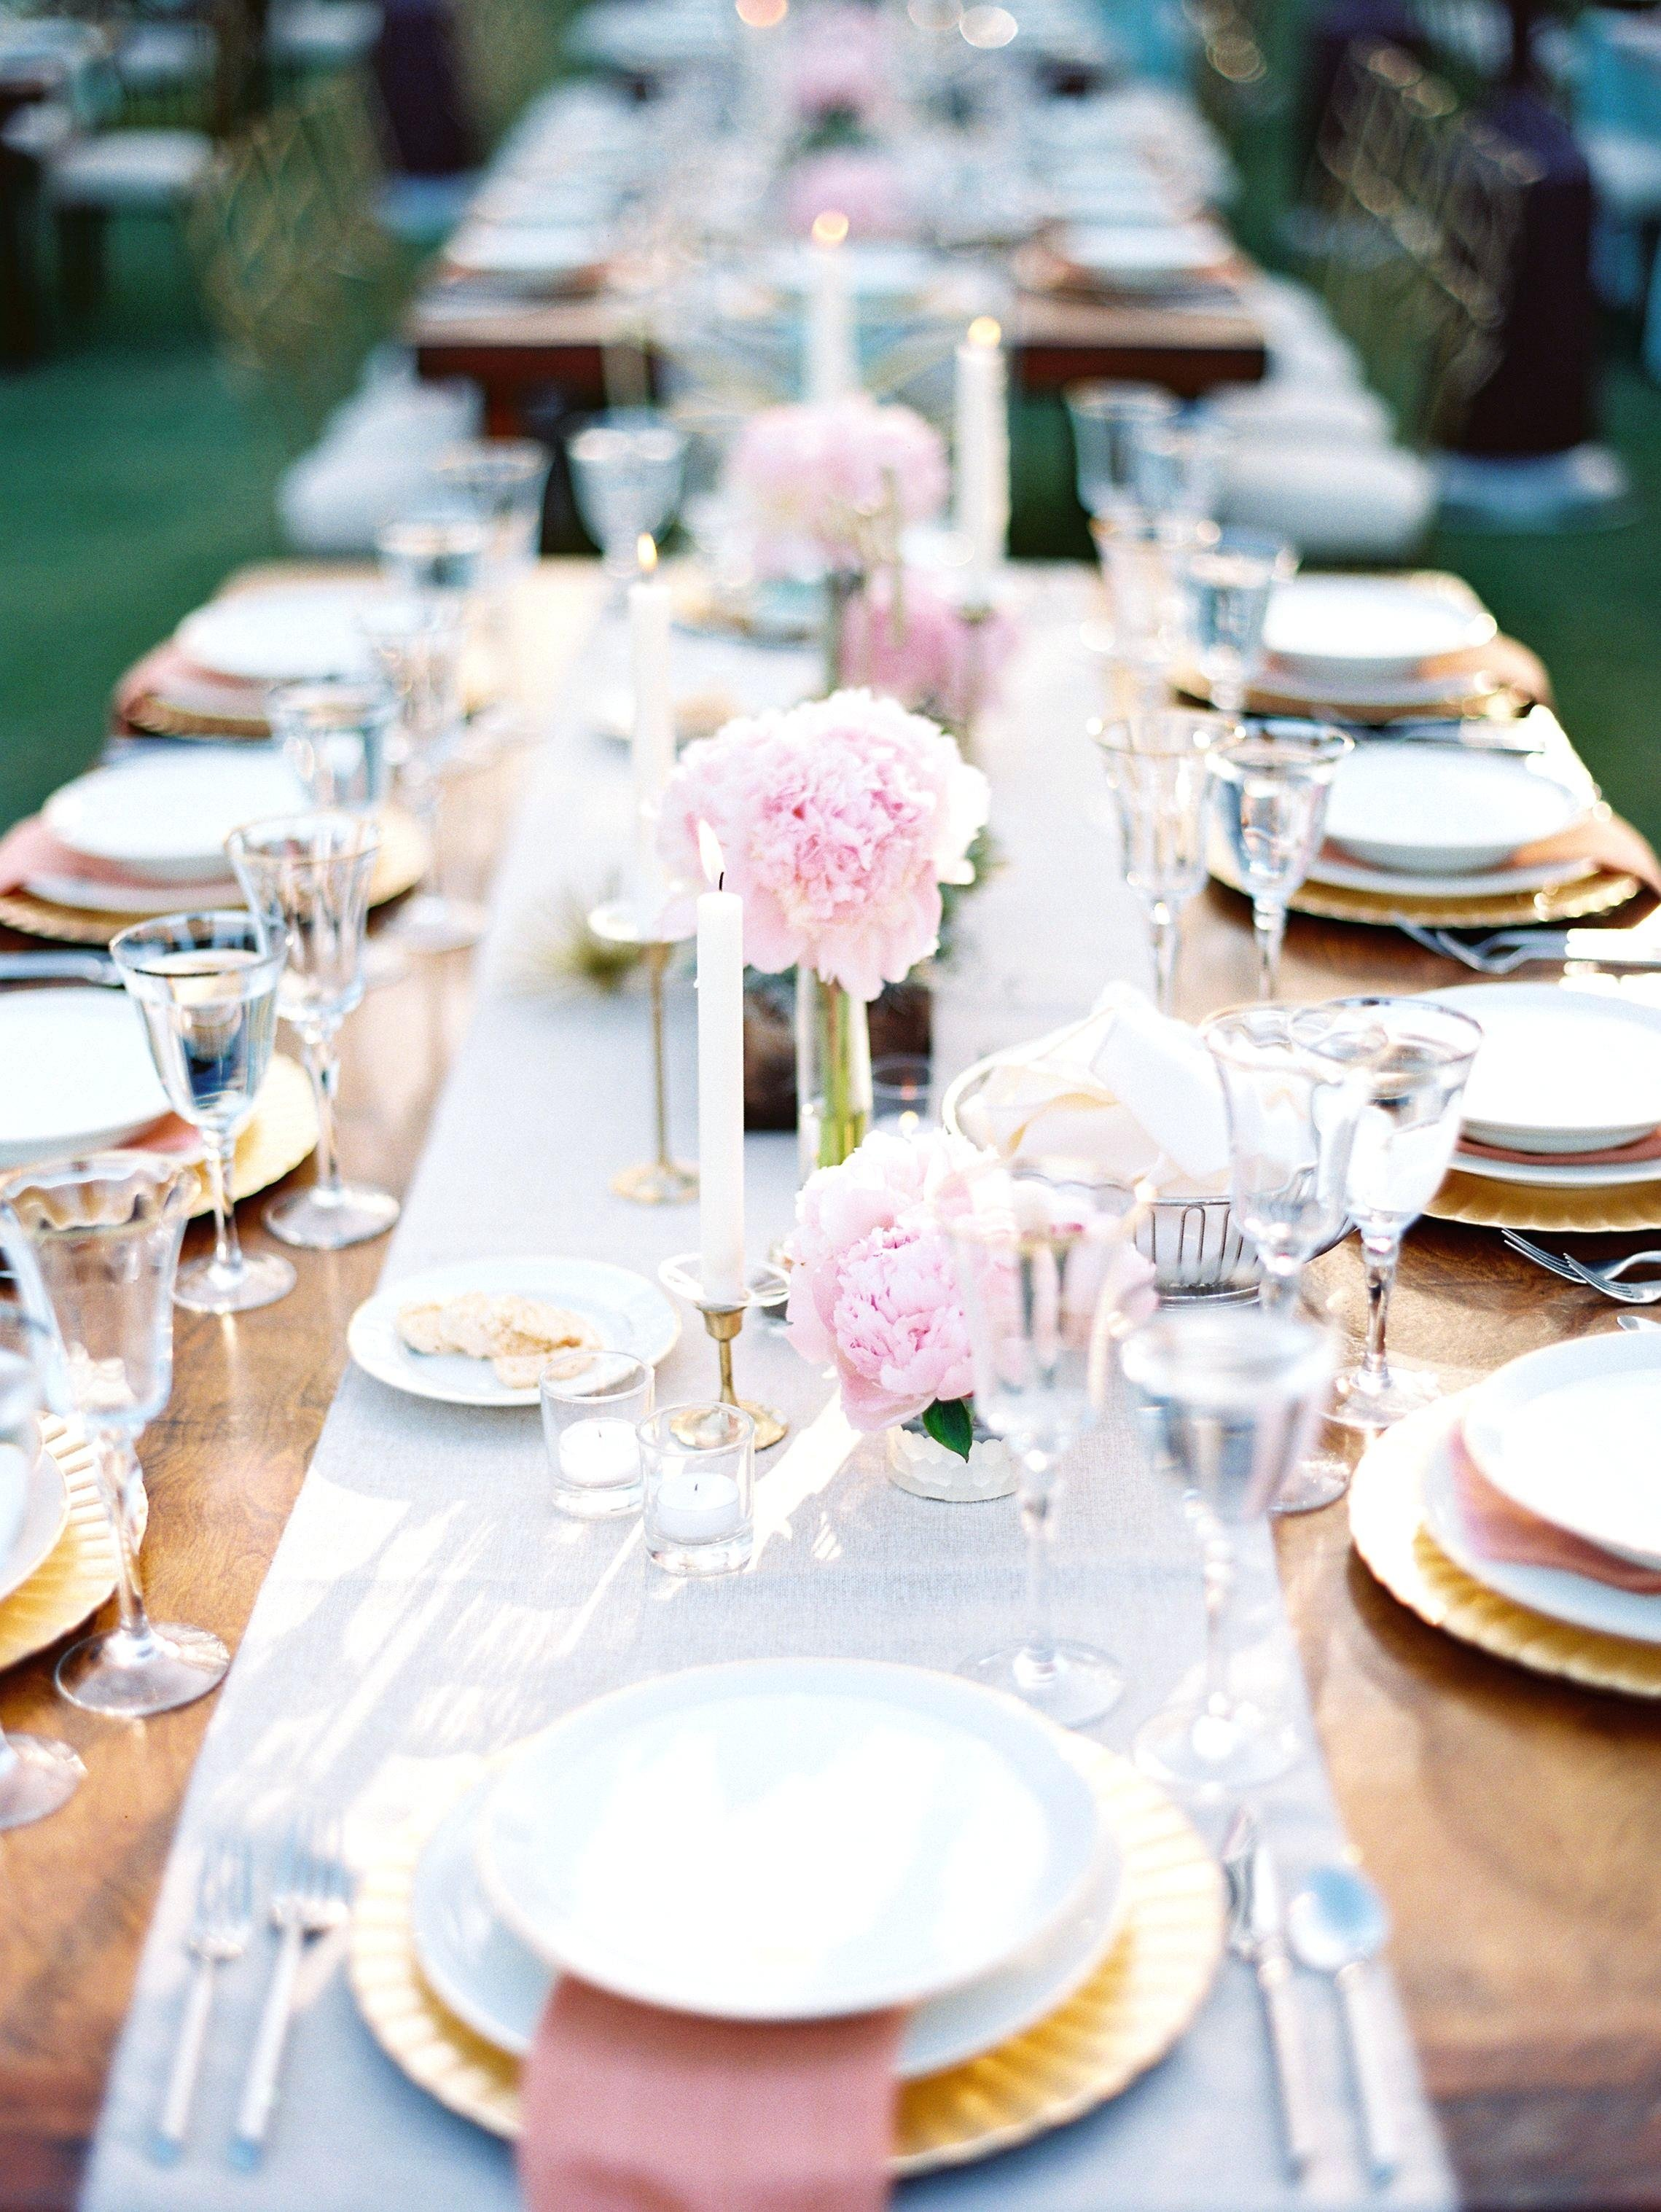 10 Lovely Wedding Rehearsal Dinner Ideas On A Budget table decor ideas decoration for wedding rehearsal dinner bridal 2020